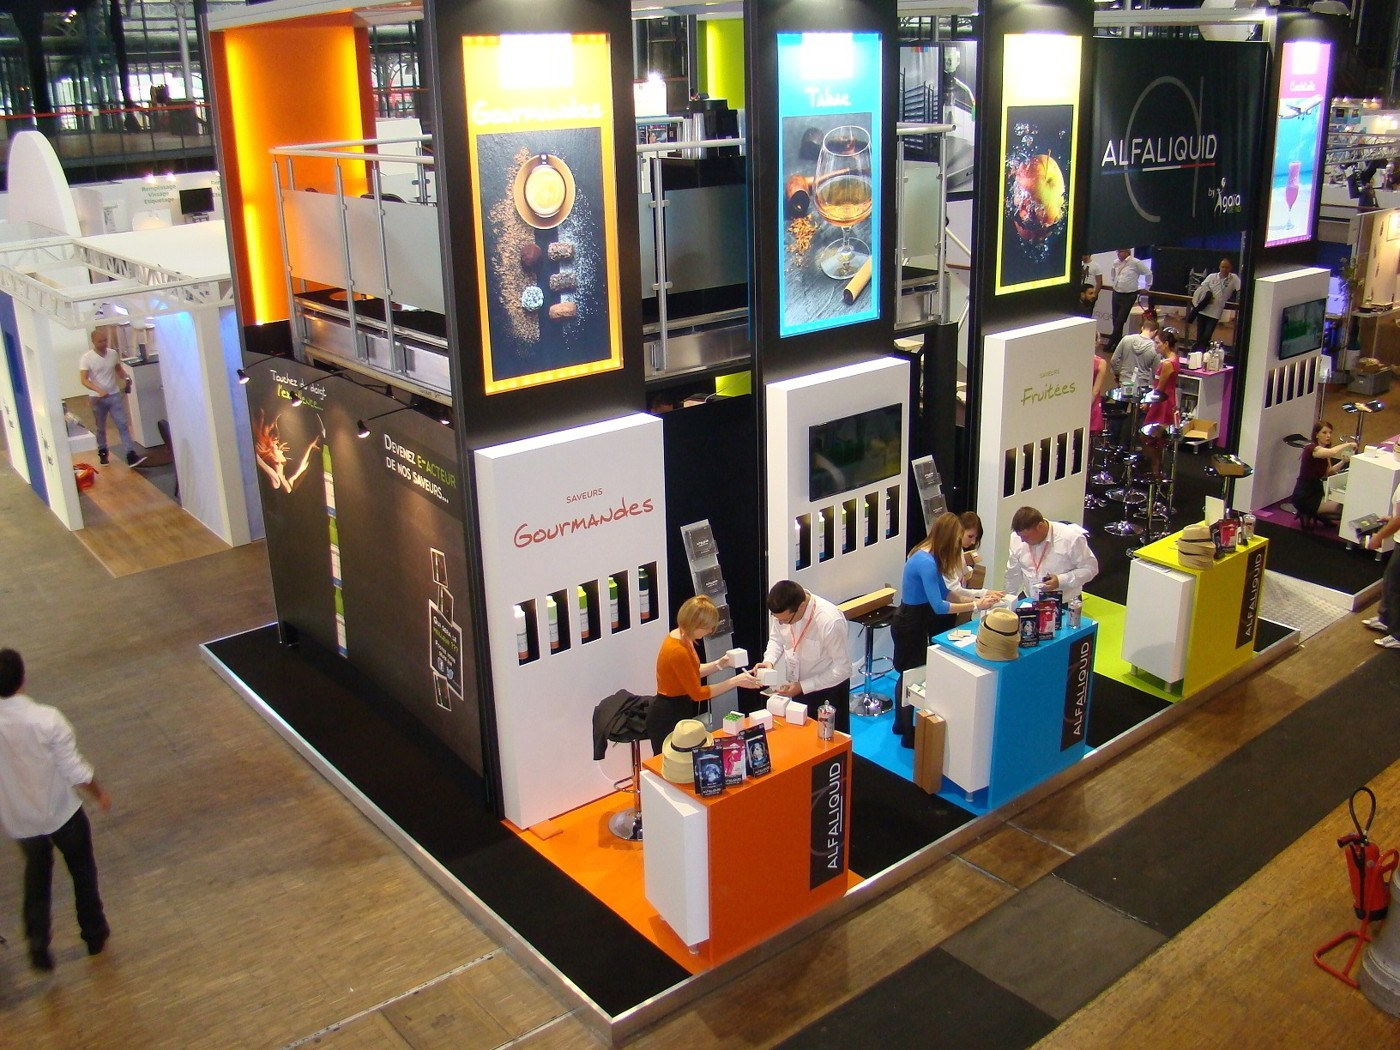 Stand alfaliquid salon vapexpo